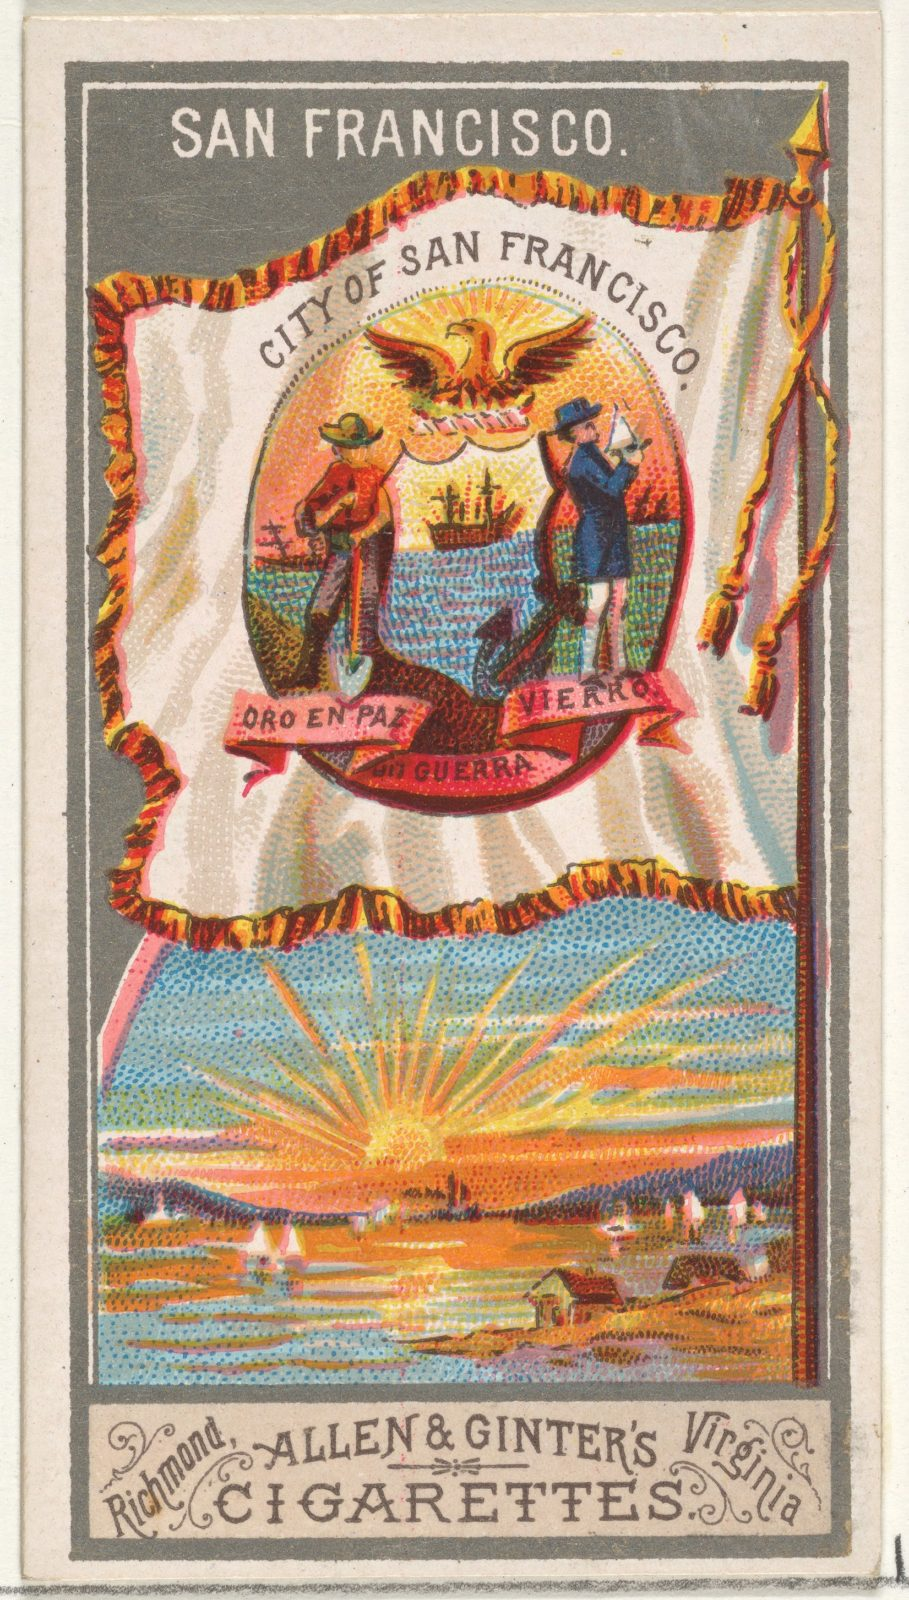 San Francisco, from the City Flags series (N6) for Allen & Ginter Cigarettes Brands